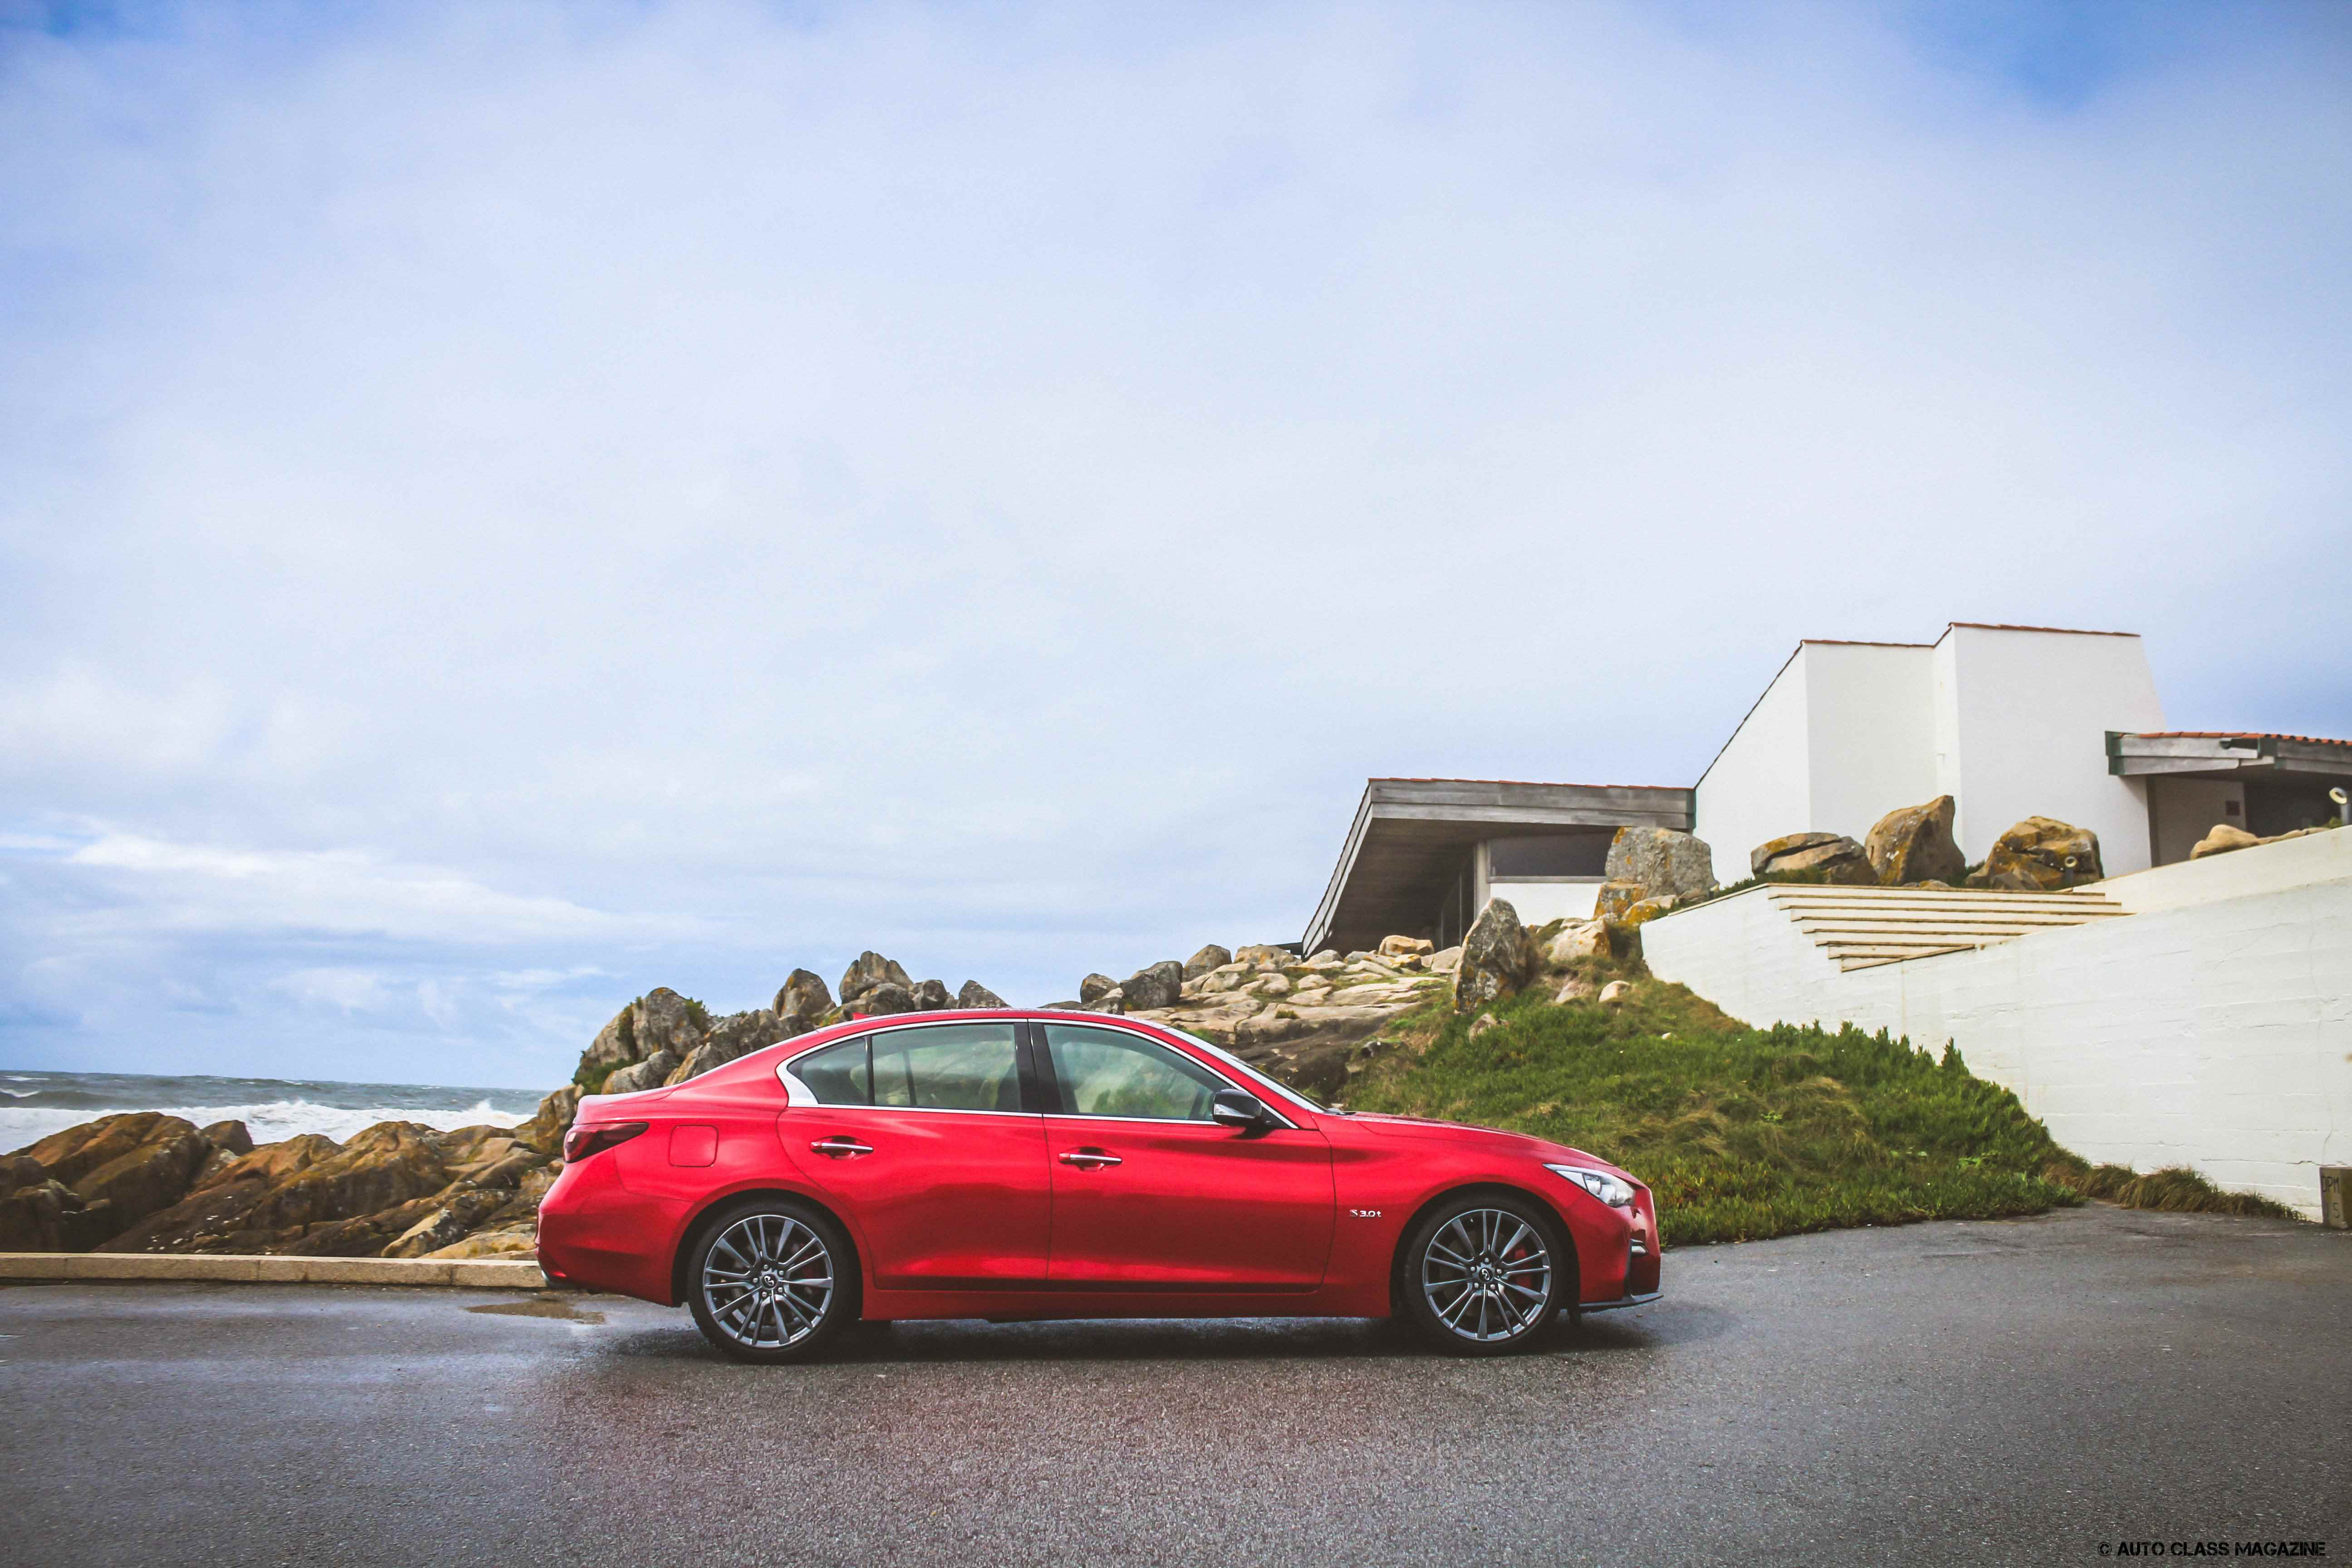 Sailing For New Horizons With The New Infiniti Q50 S